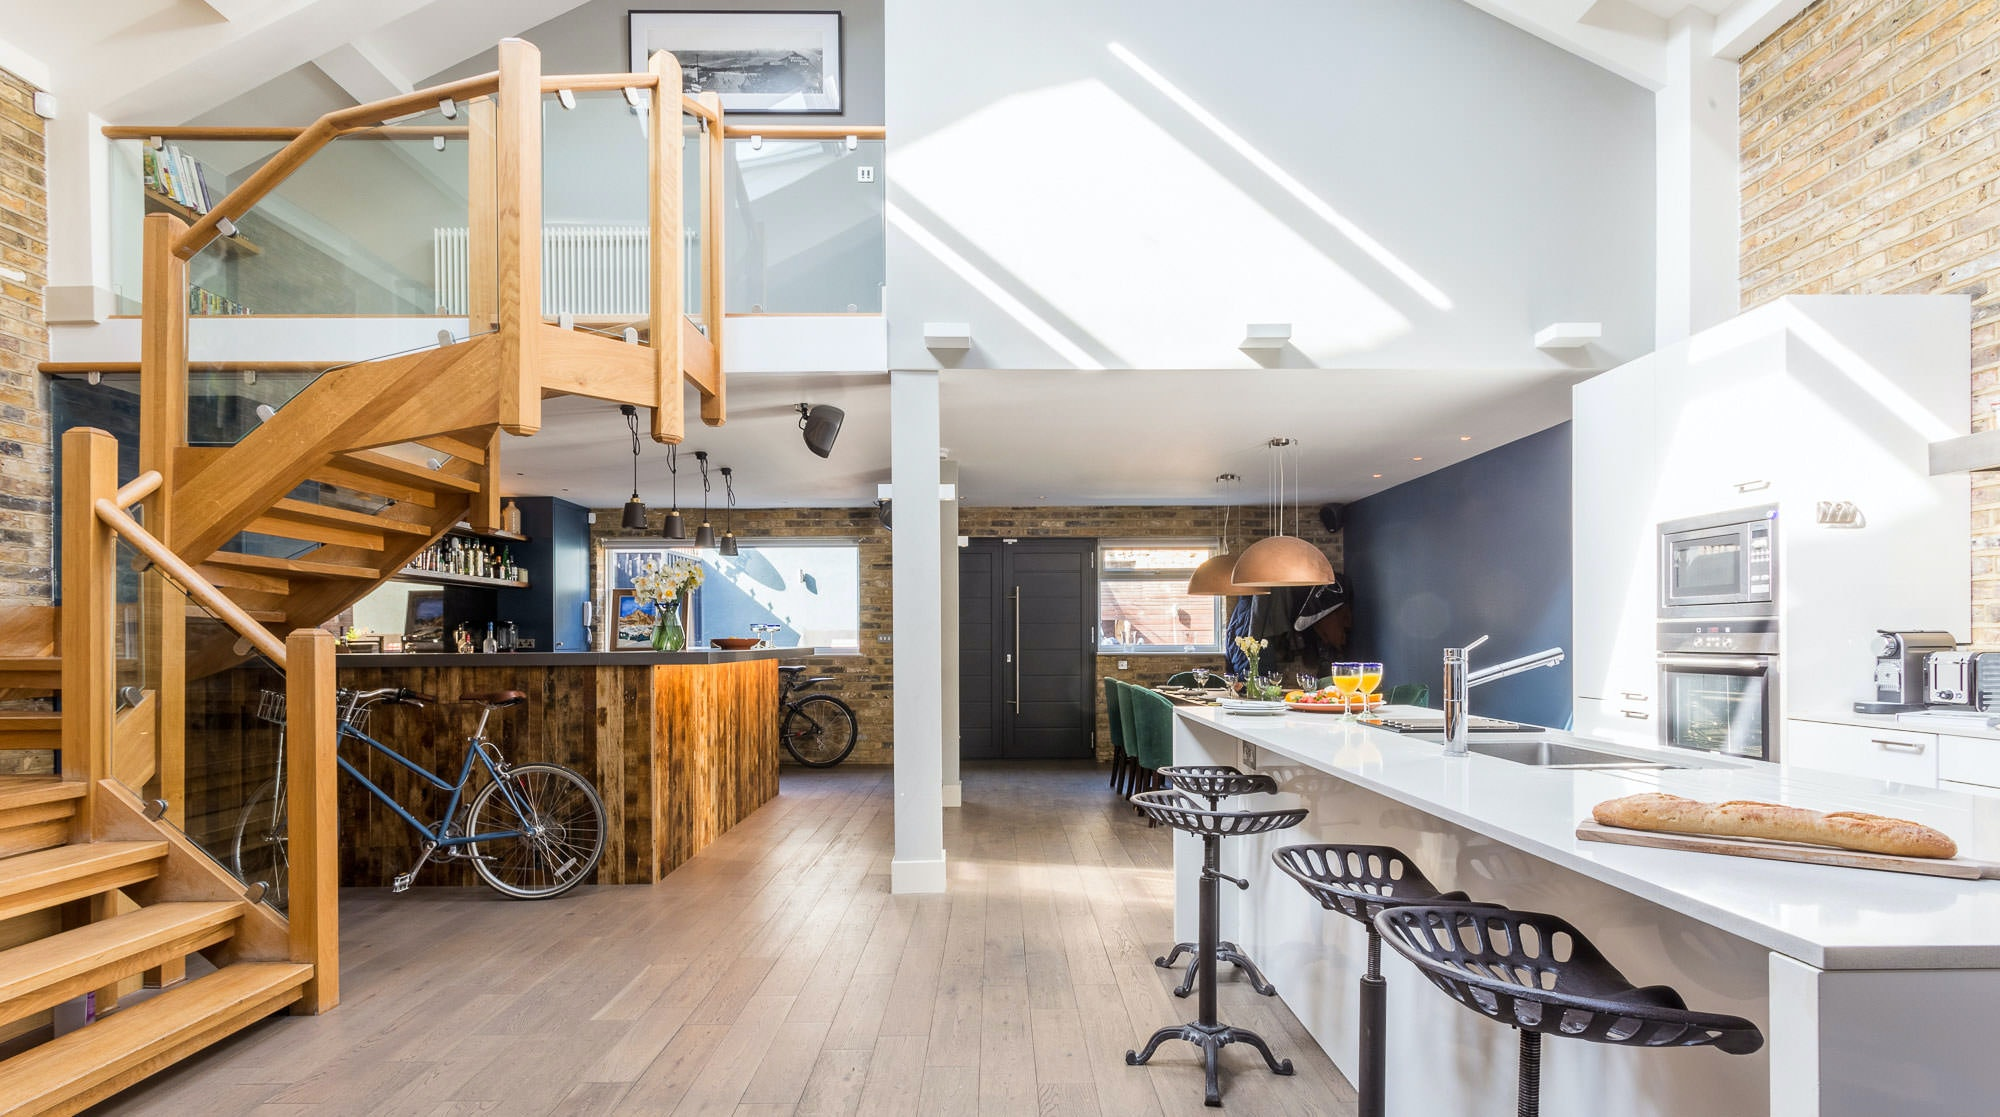 One Of The Best London Airbnb Out There This House Is Made For Good Times